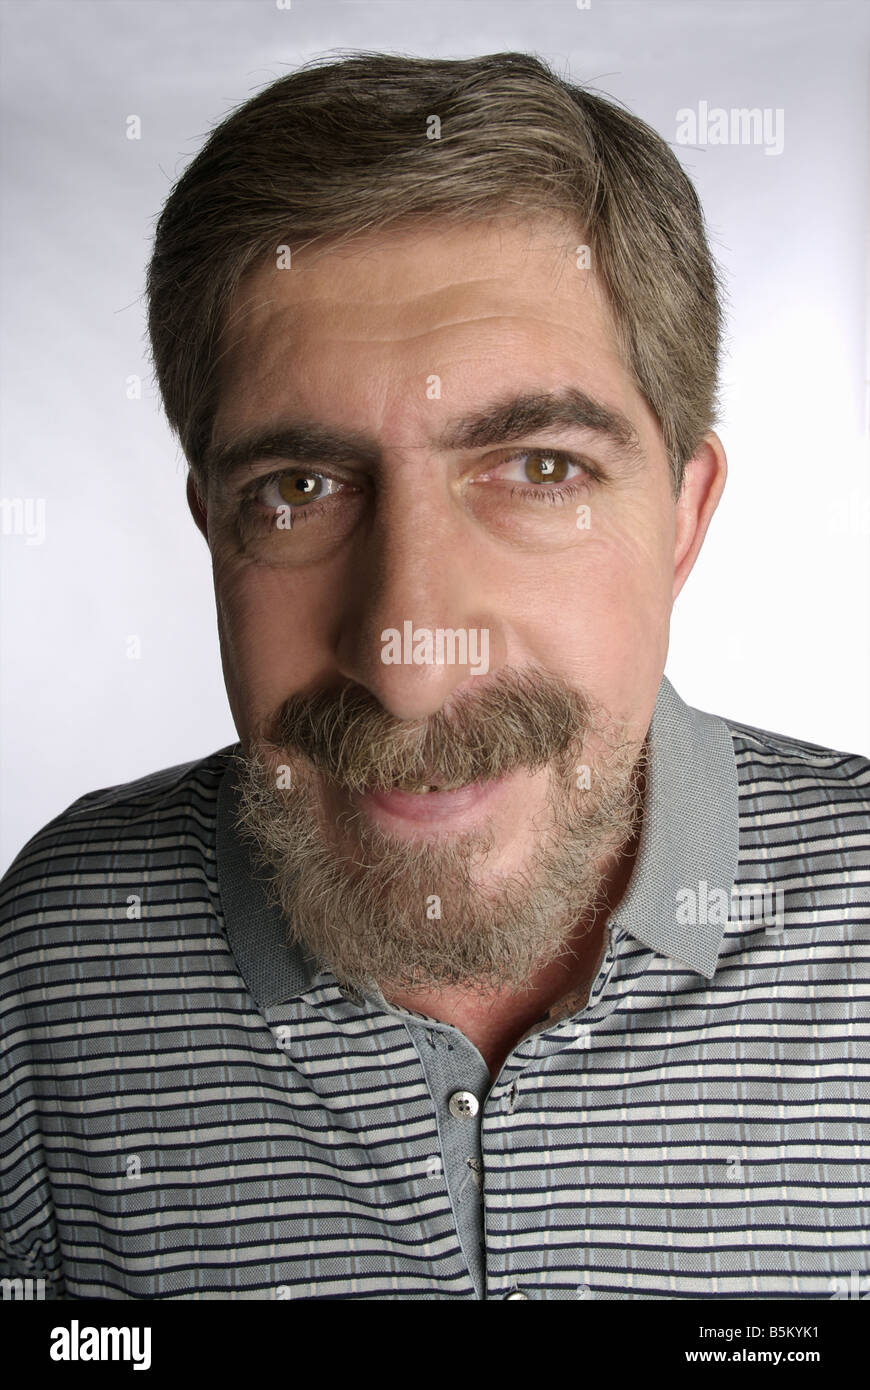 Middle aged man with beard. - Stock Image